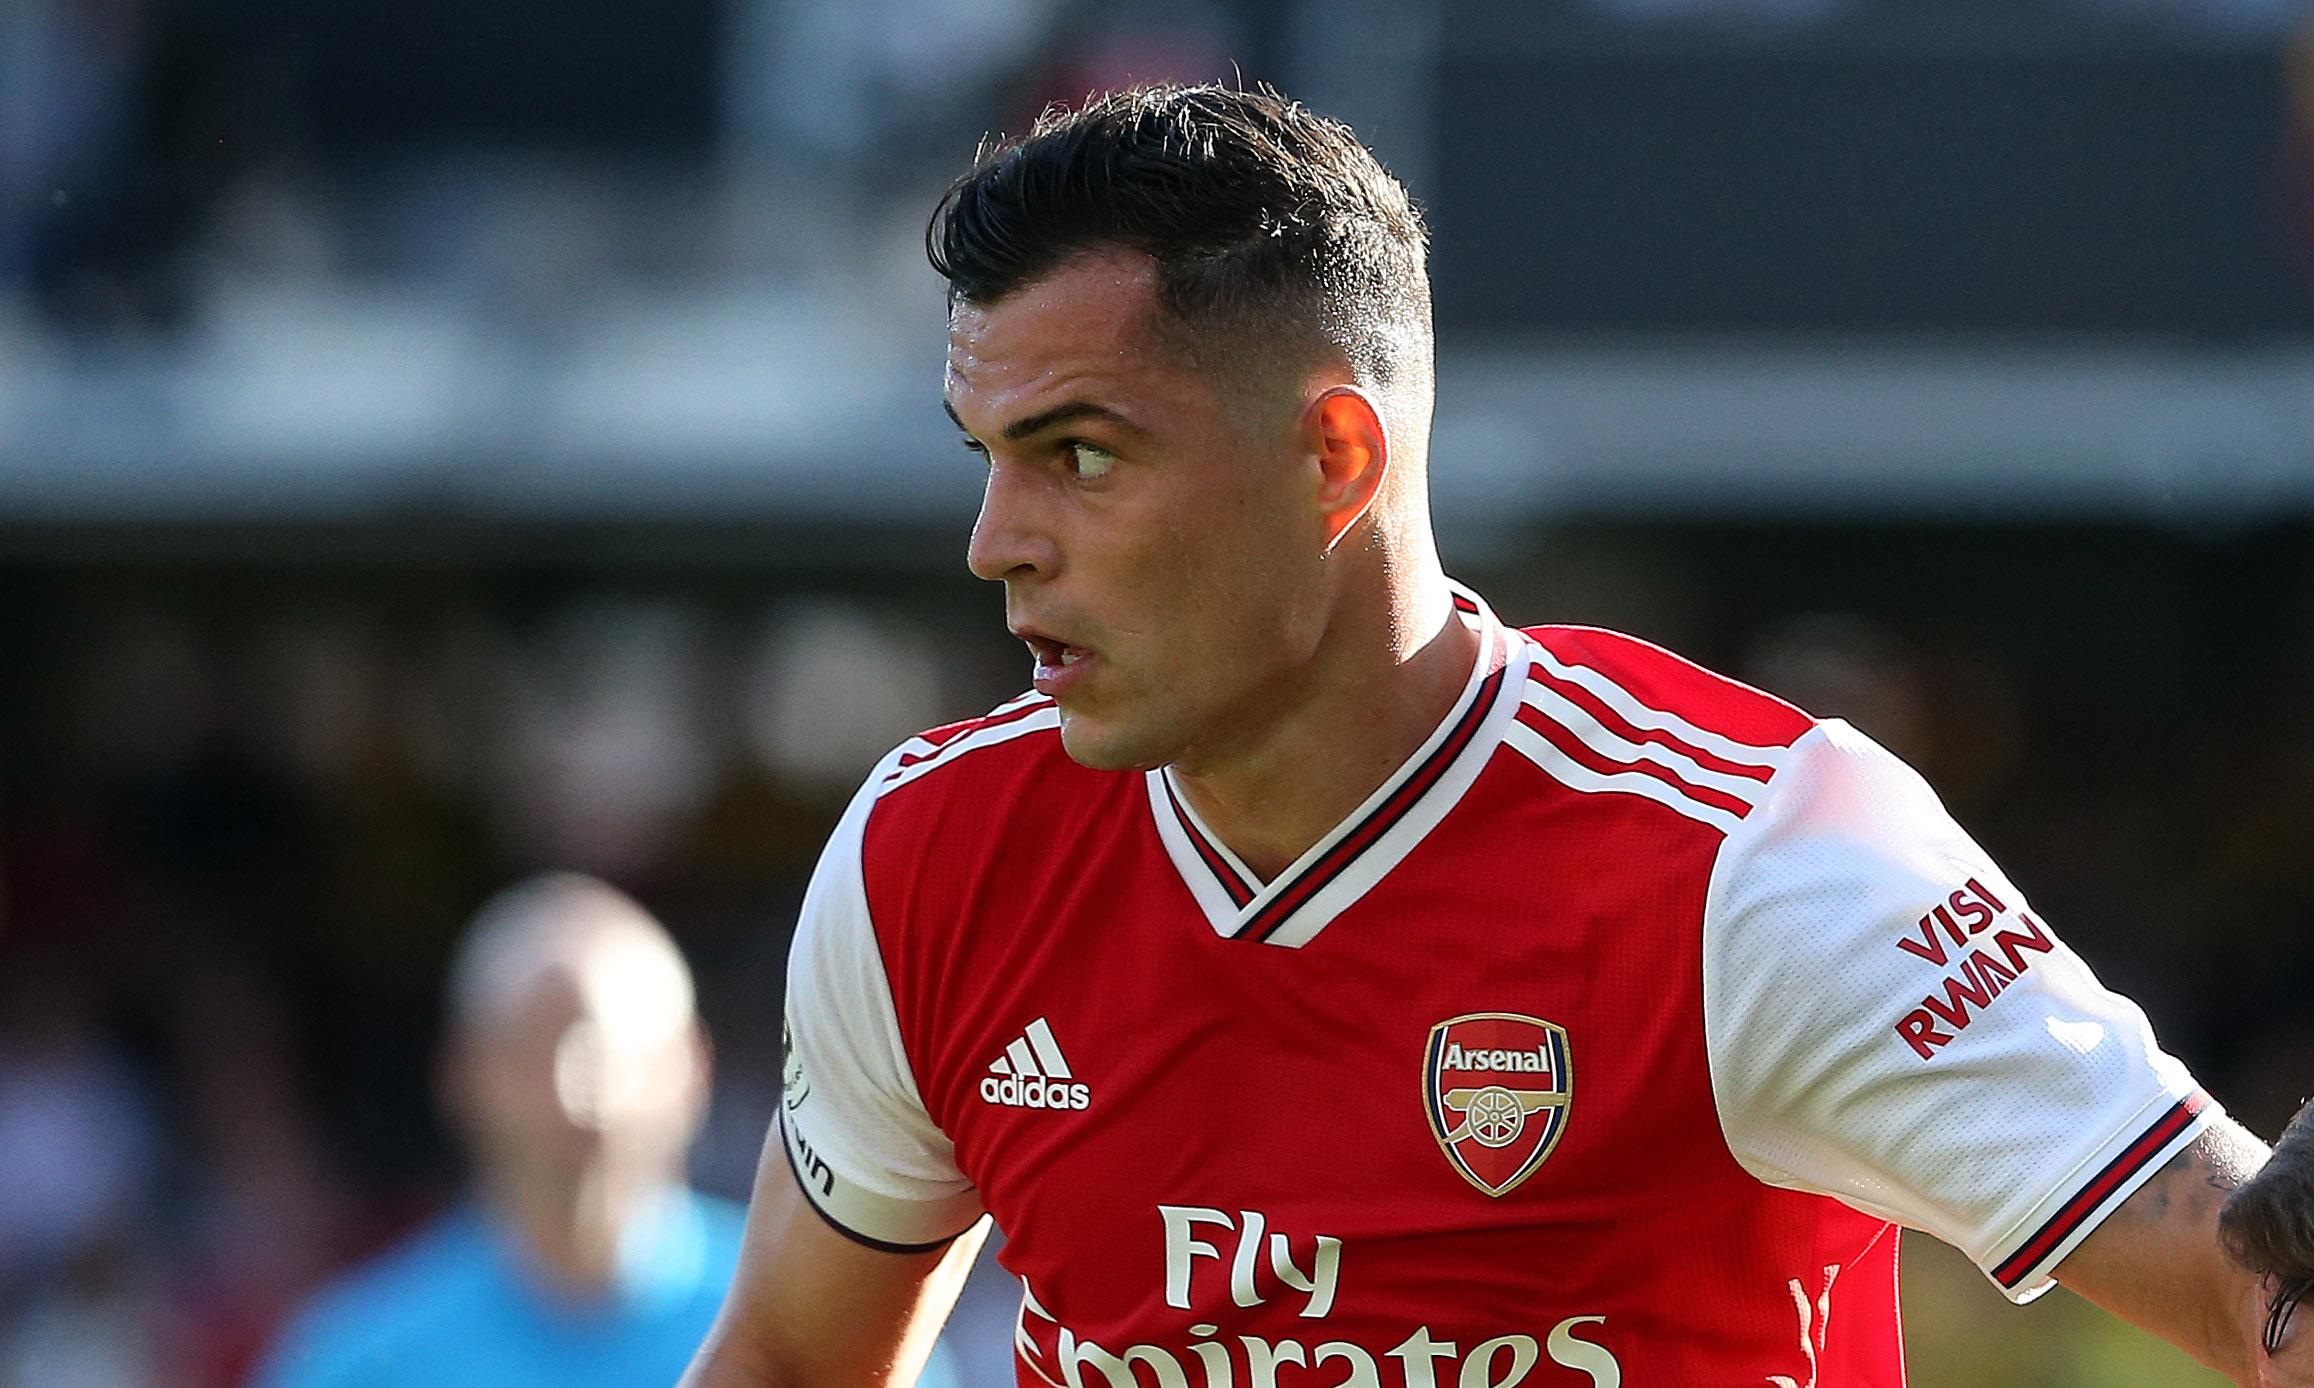 Arsenal captain Granit Xhaka says team were 'scared' in second half at Watford